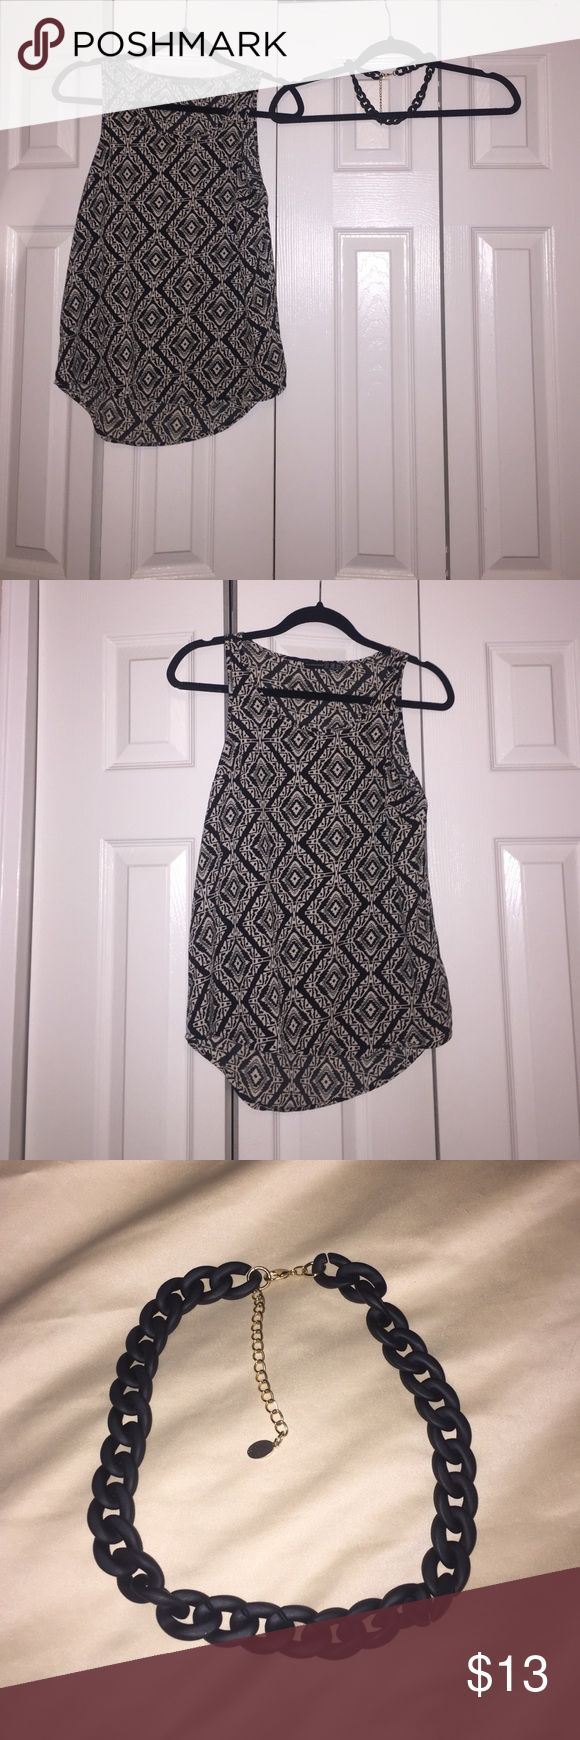 Black and white top (free black chain) Dressy black and white top. Longer at the back compared to front length.I'm also giving away a FREE black chain that goes lovely with it! New but no tags. Both never been worn. primark Tops